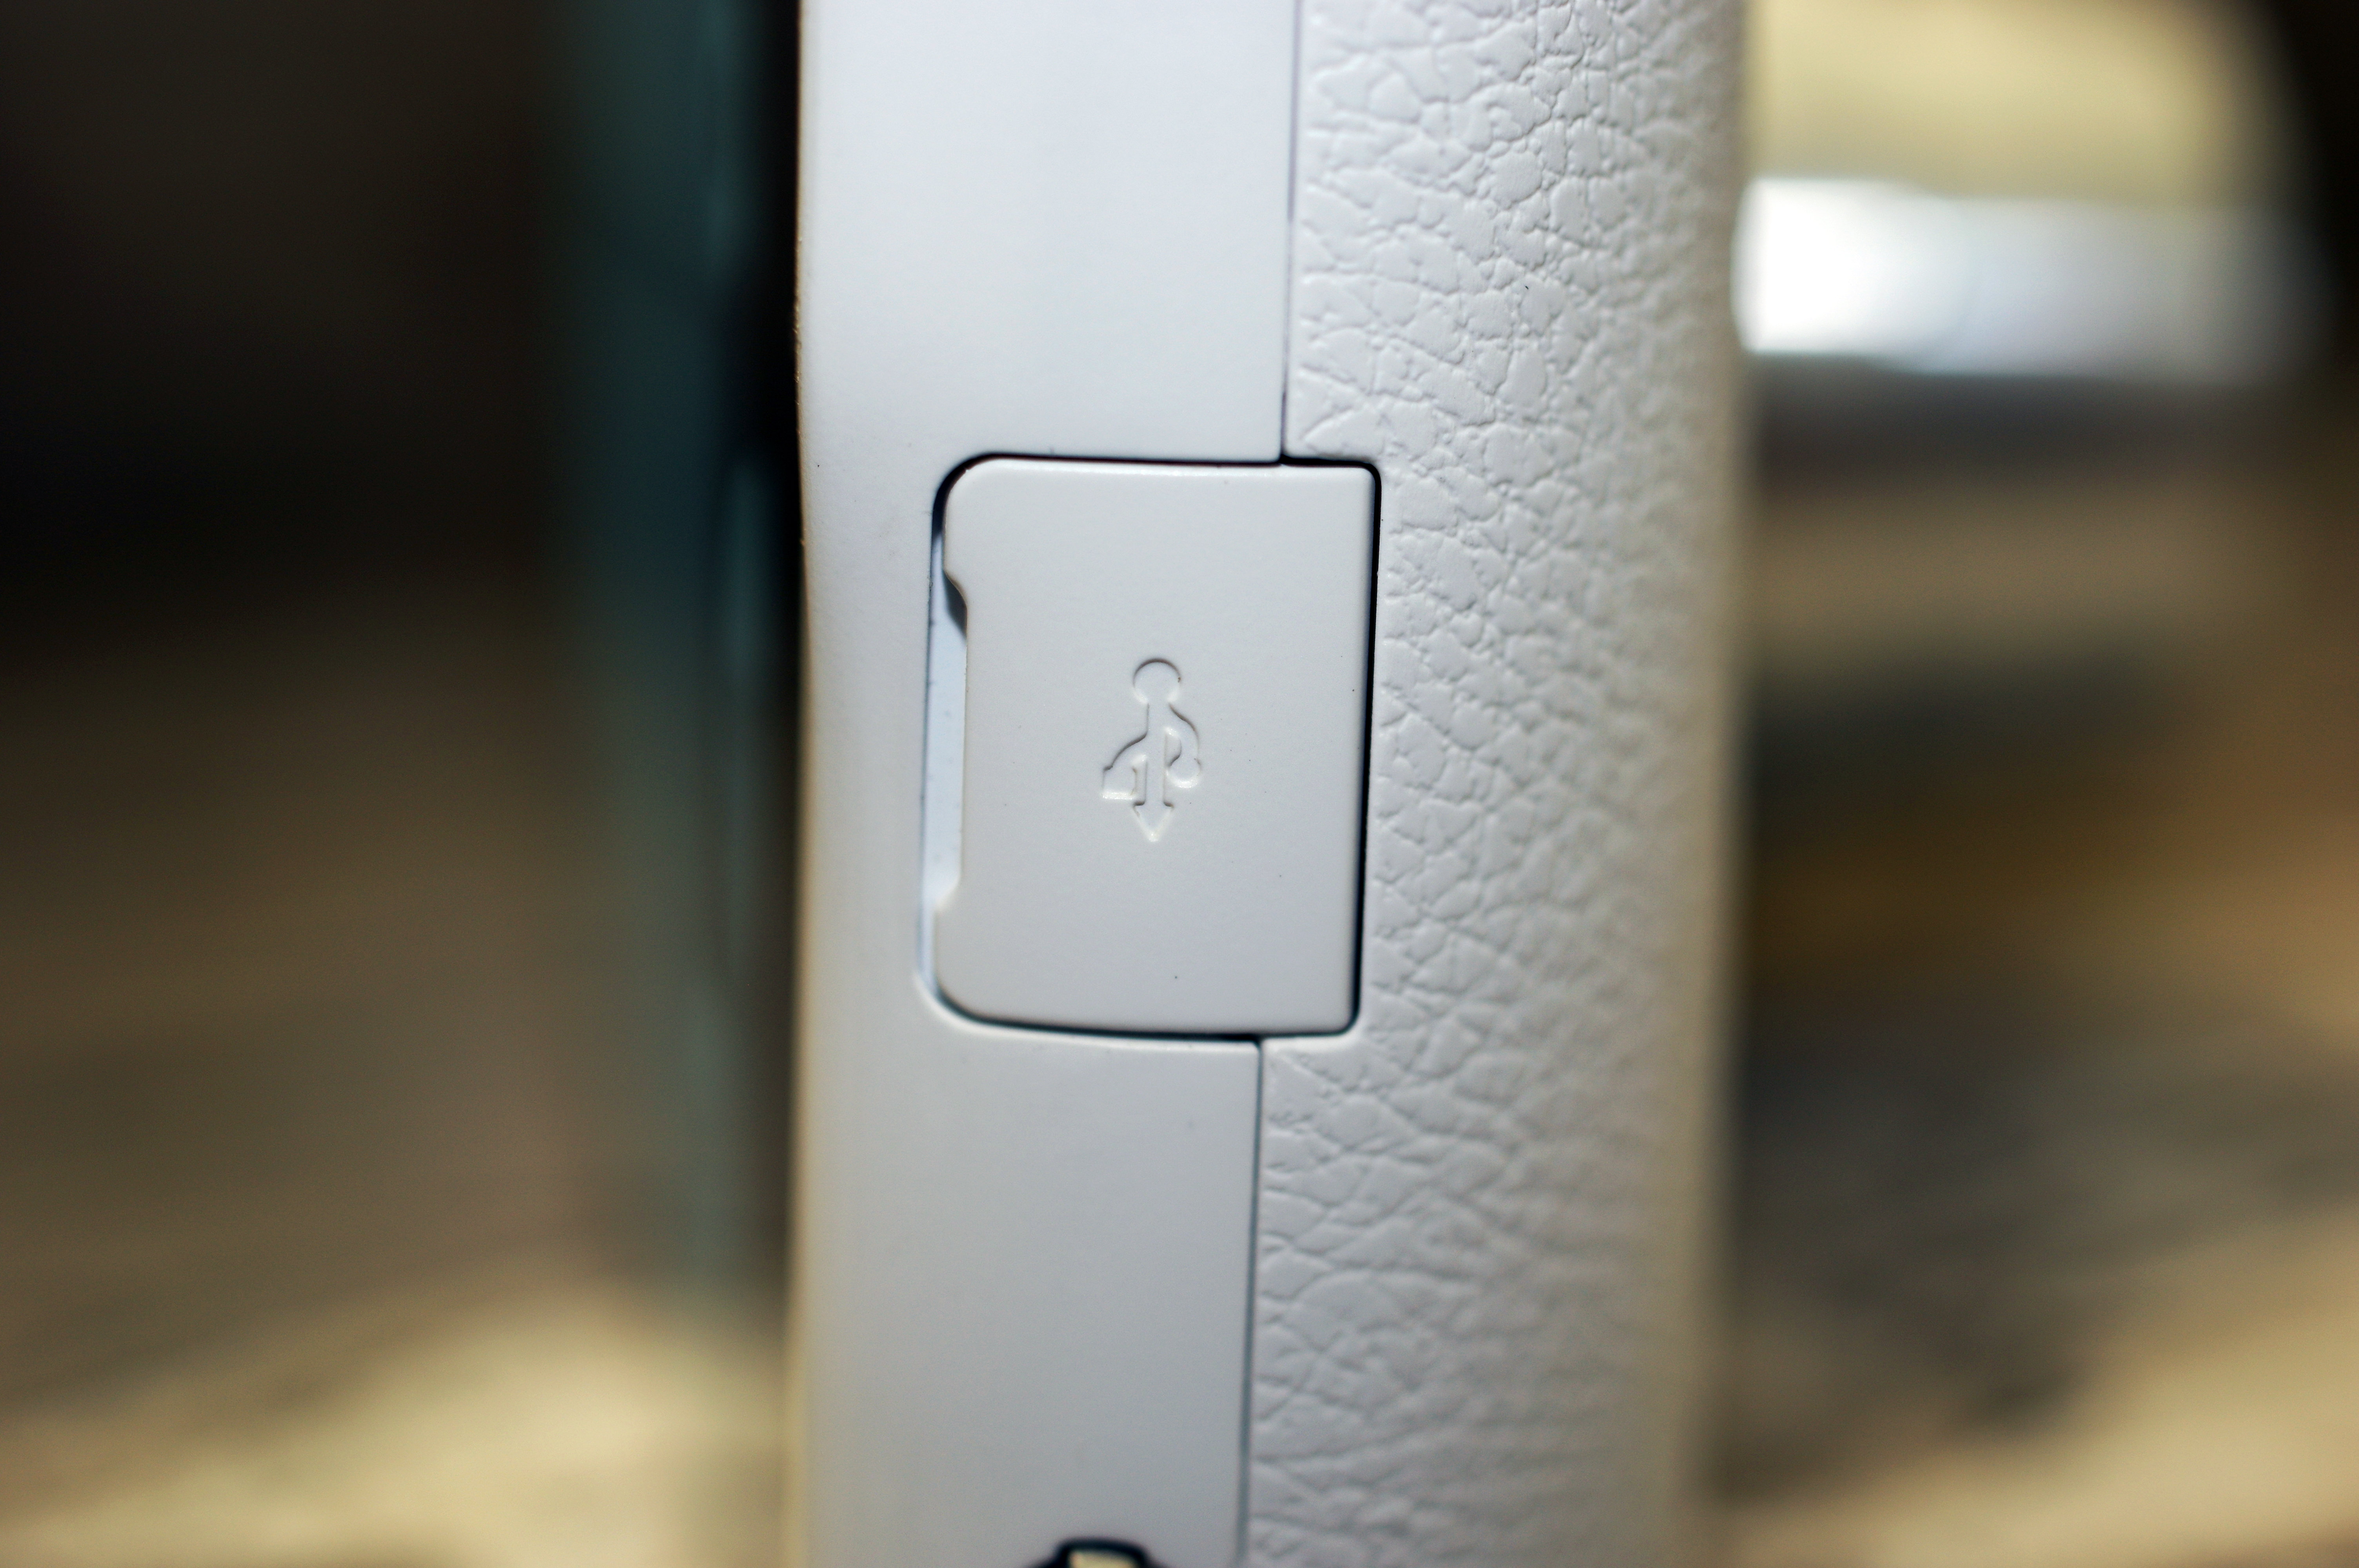 There is a micro-USB port for charging and various adaptors.